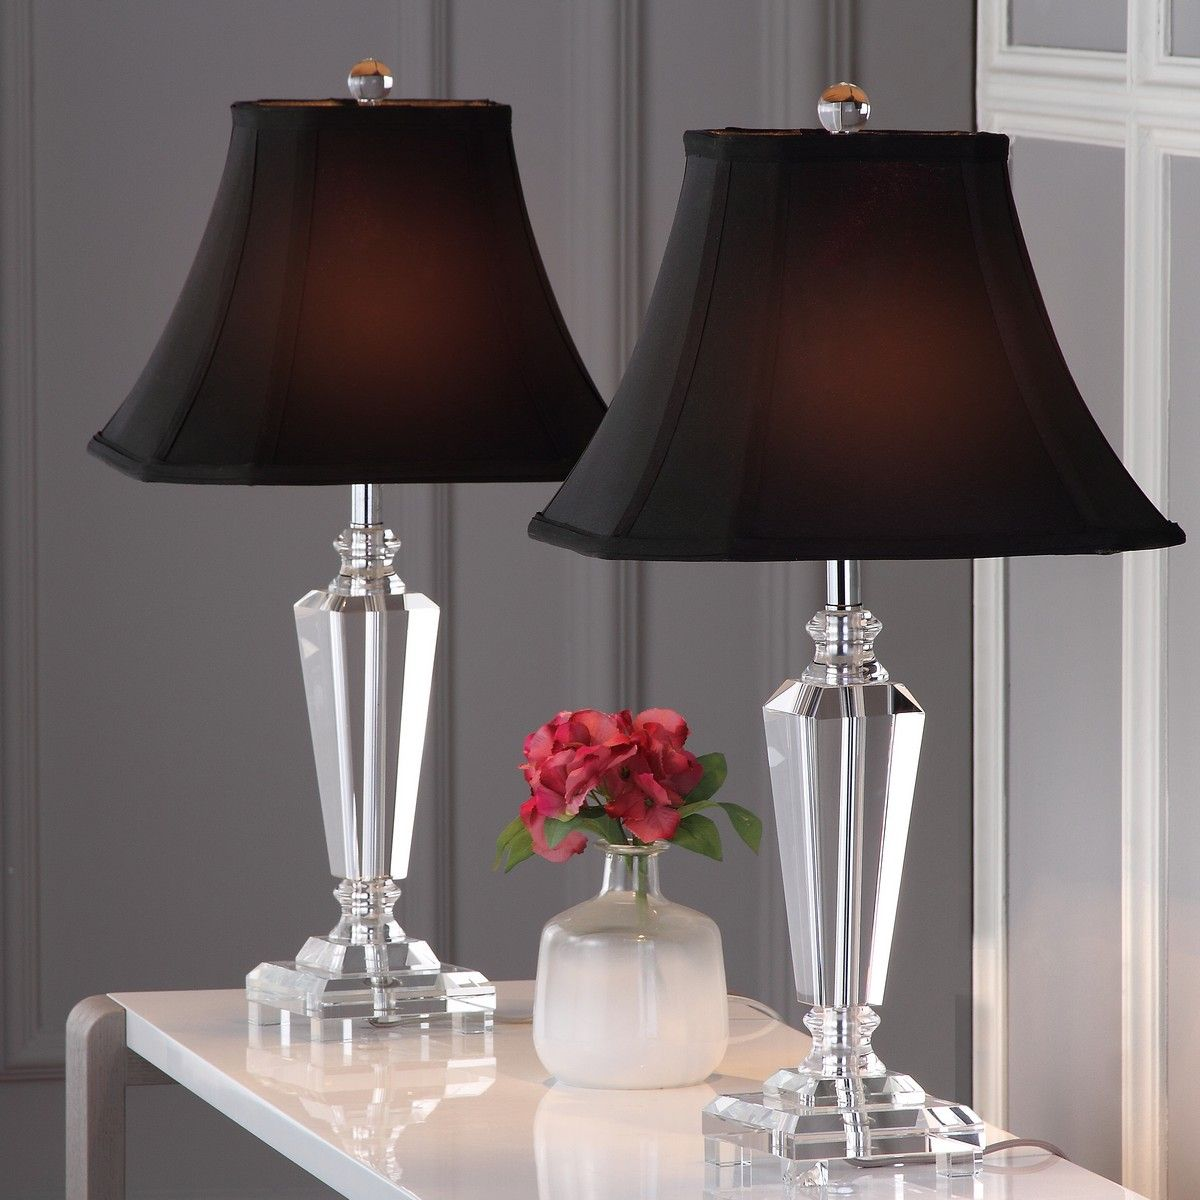 Lit4103a Set2 Table Lamps Lighting By Safavieh Crystal Table Lamps Glass Table Lamp Table Lamp Sets